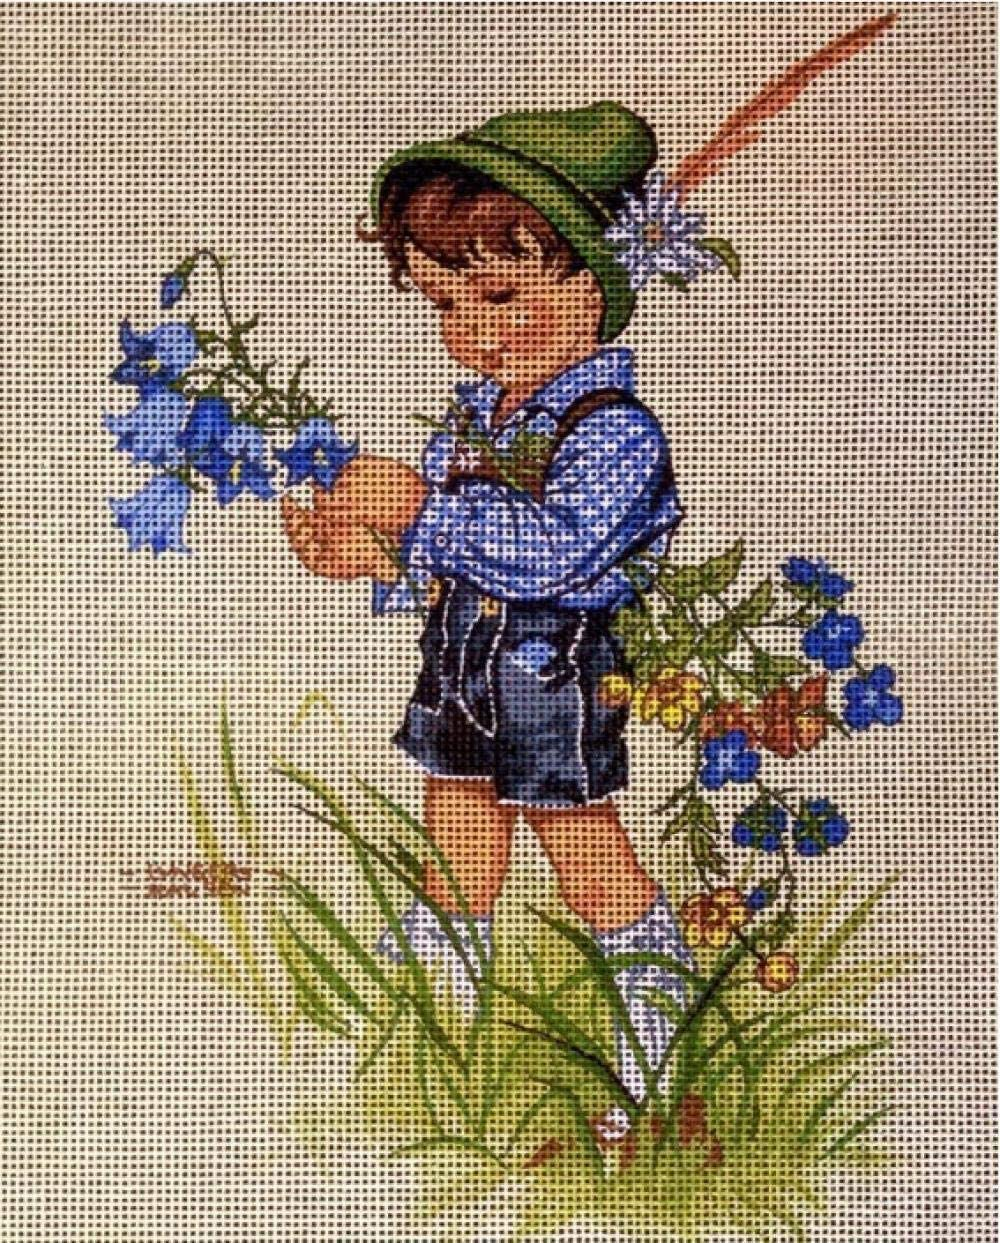 Stamped Cross Max 84% OFF Stitch specialty shop Kits Beginners Flo Adult Boy Embroidery for